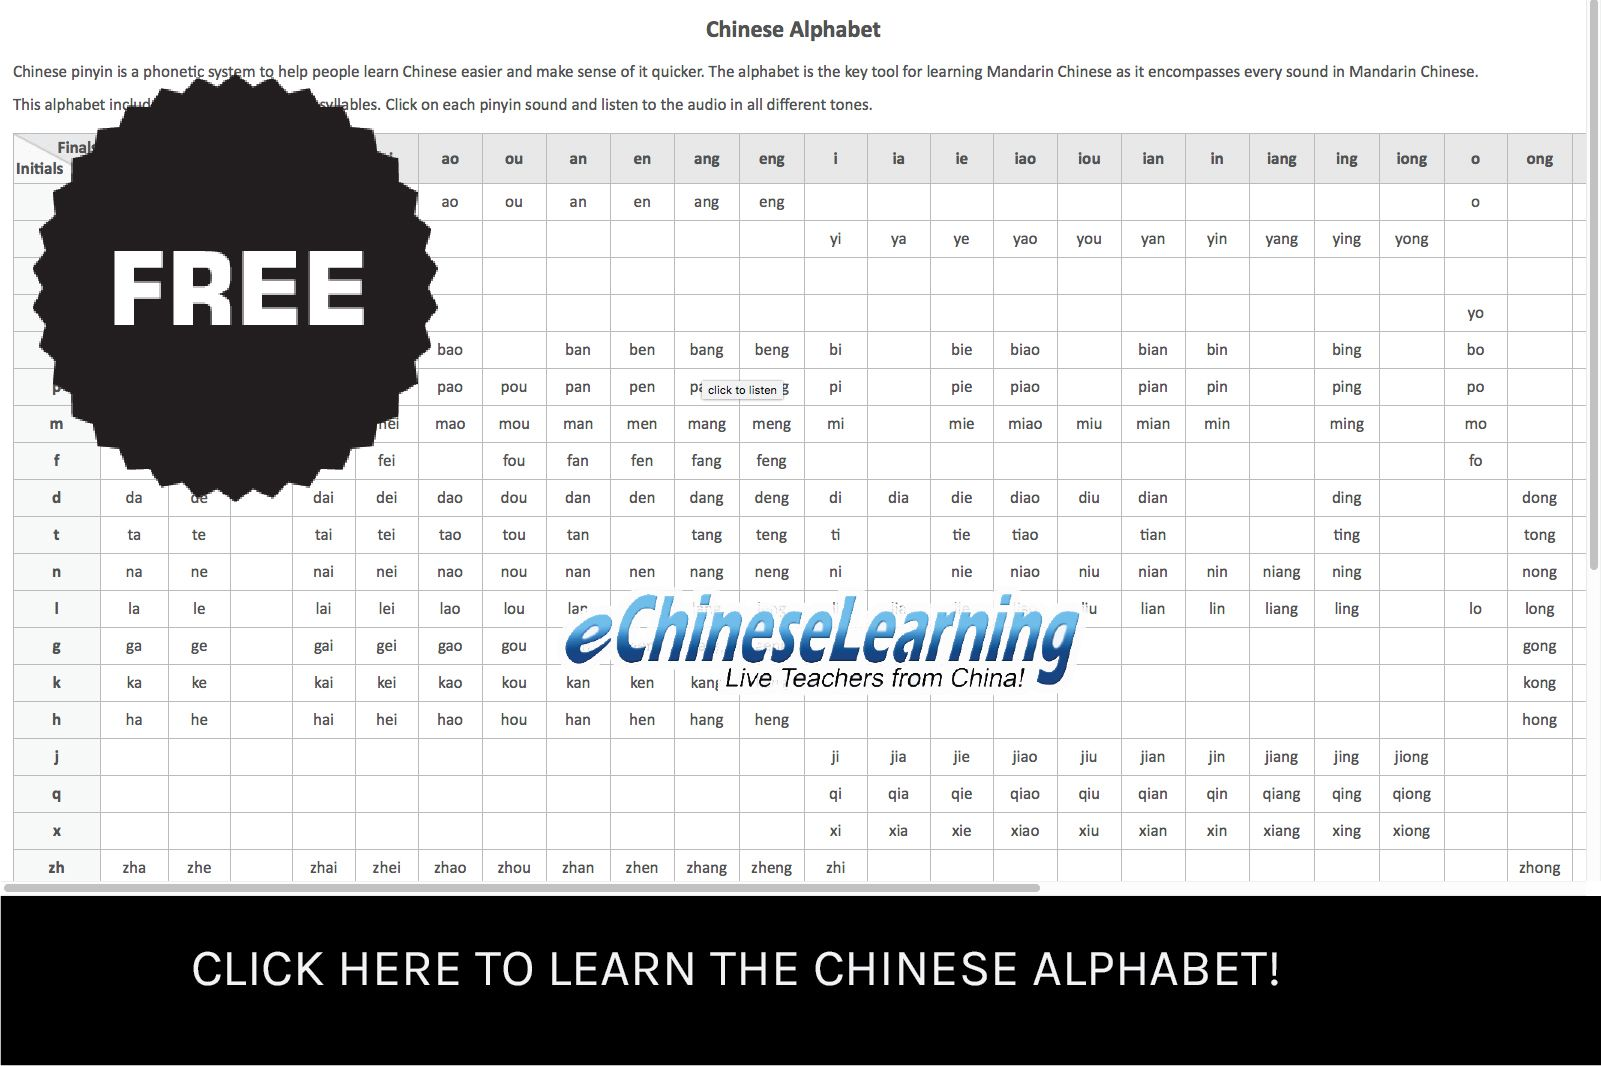 Pin By Echineselearning On Chinese Learning Resources